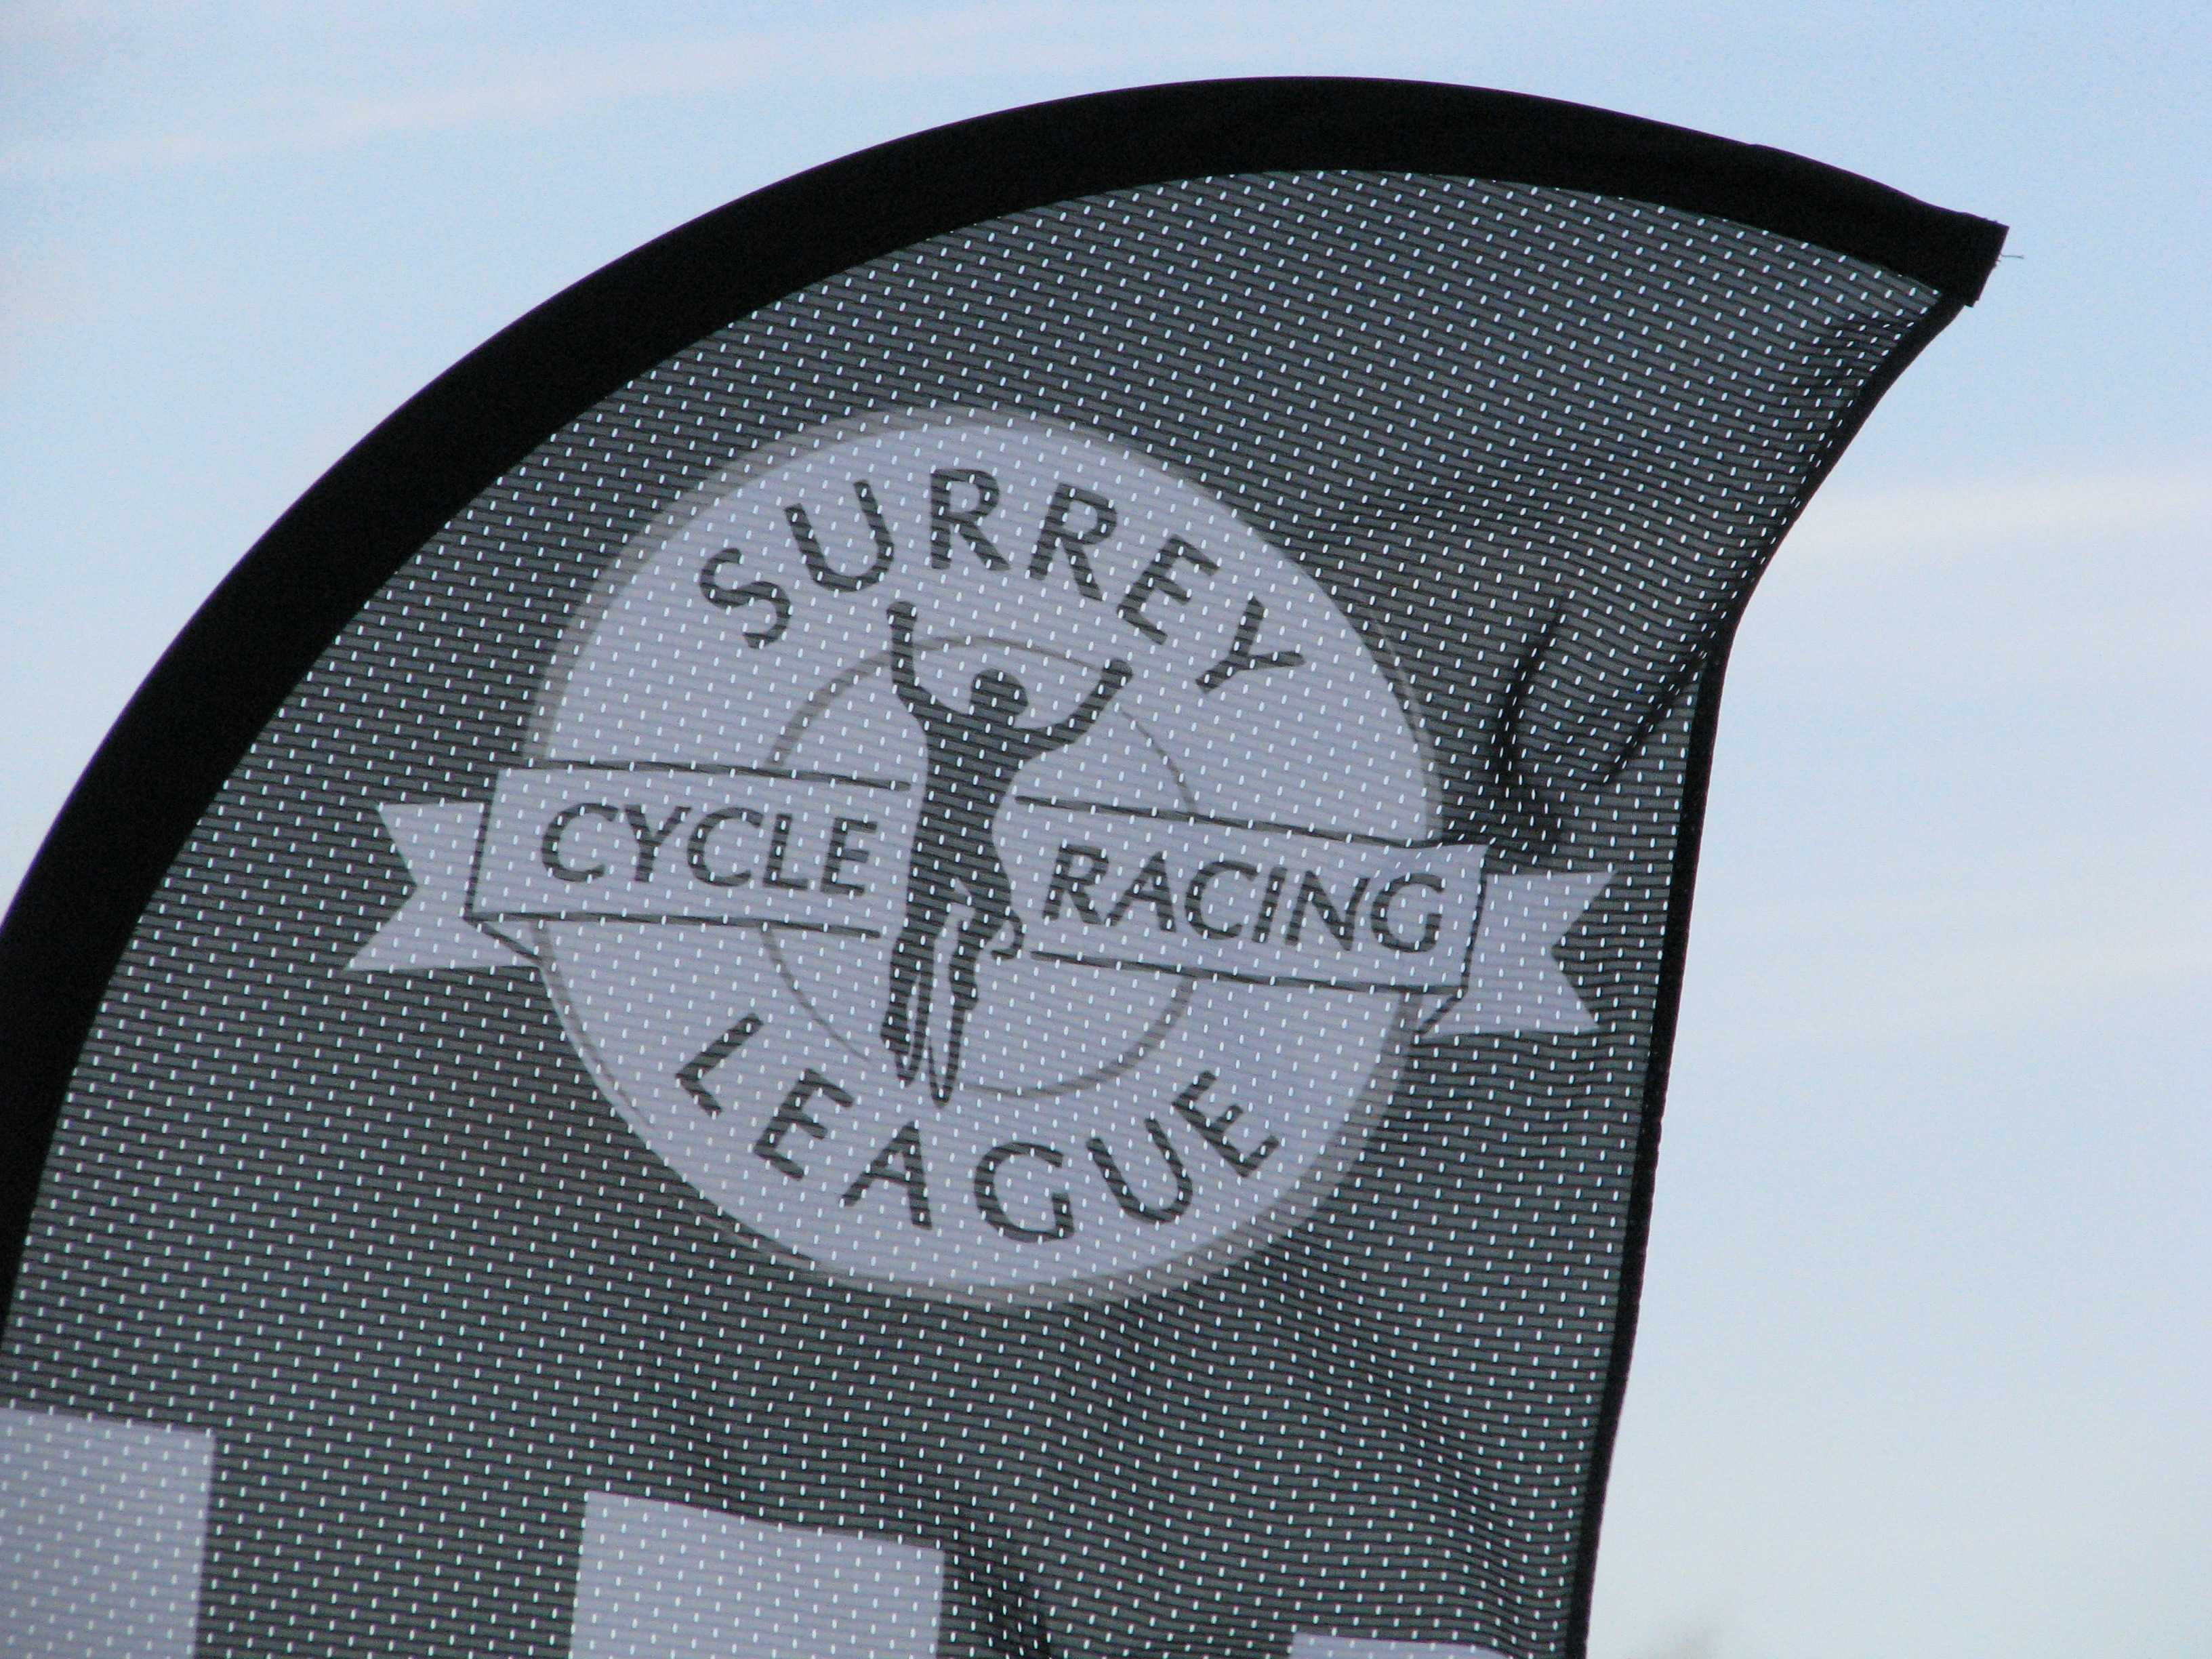 Surrey League Safer Racing Initiative